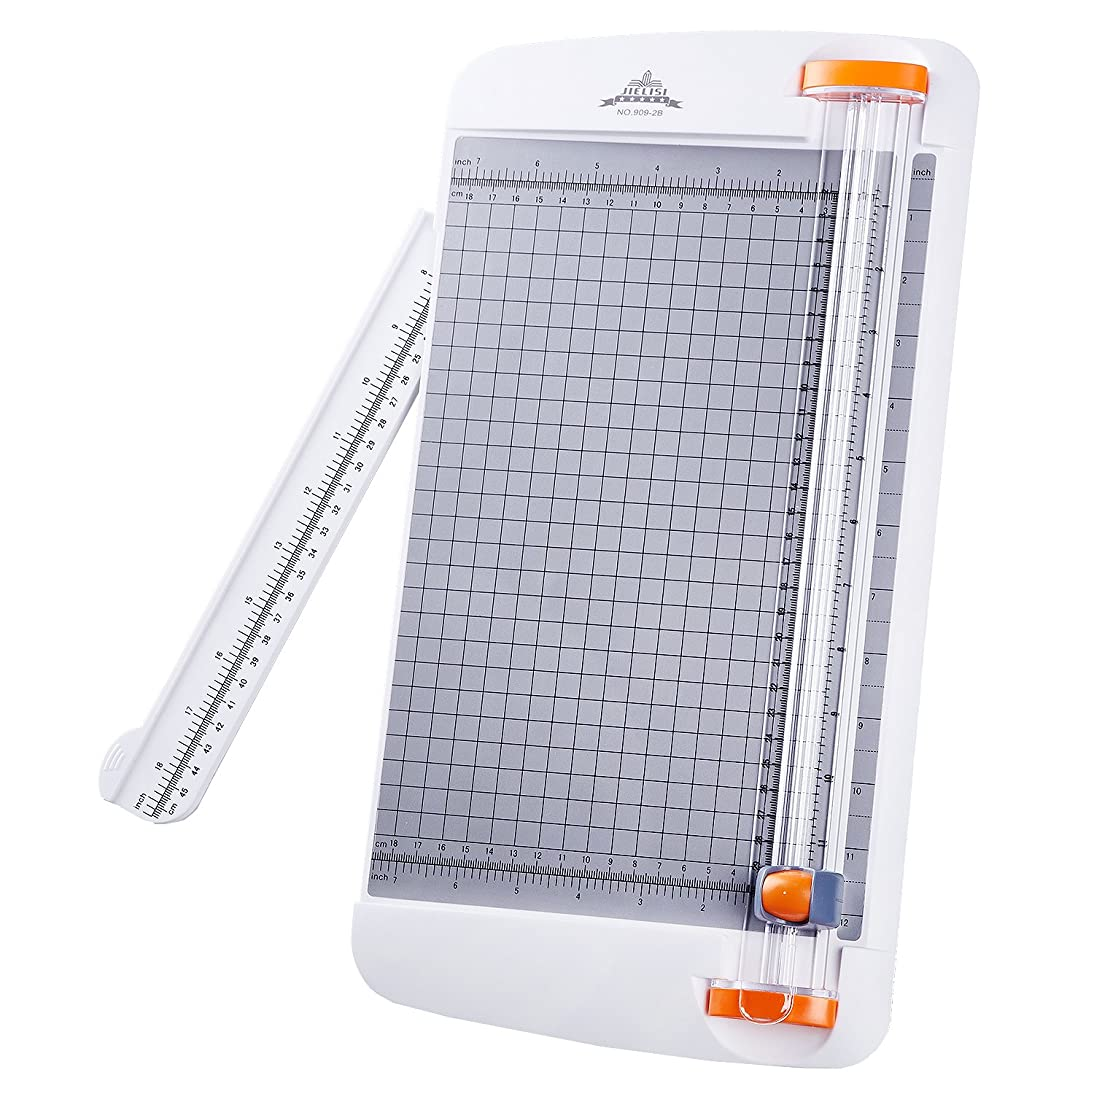 Work4U Titanium 12 Inch Paper Cutter A4 Paper Trimmer with Automatic Security Safeguard Guillotine for Coupon Craft Paper Label and Photo White (909-2B)